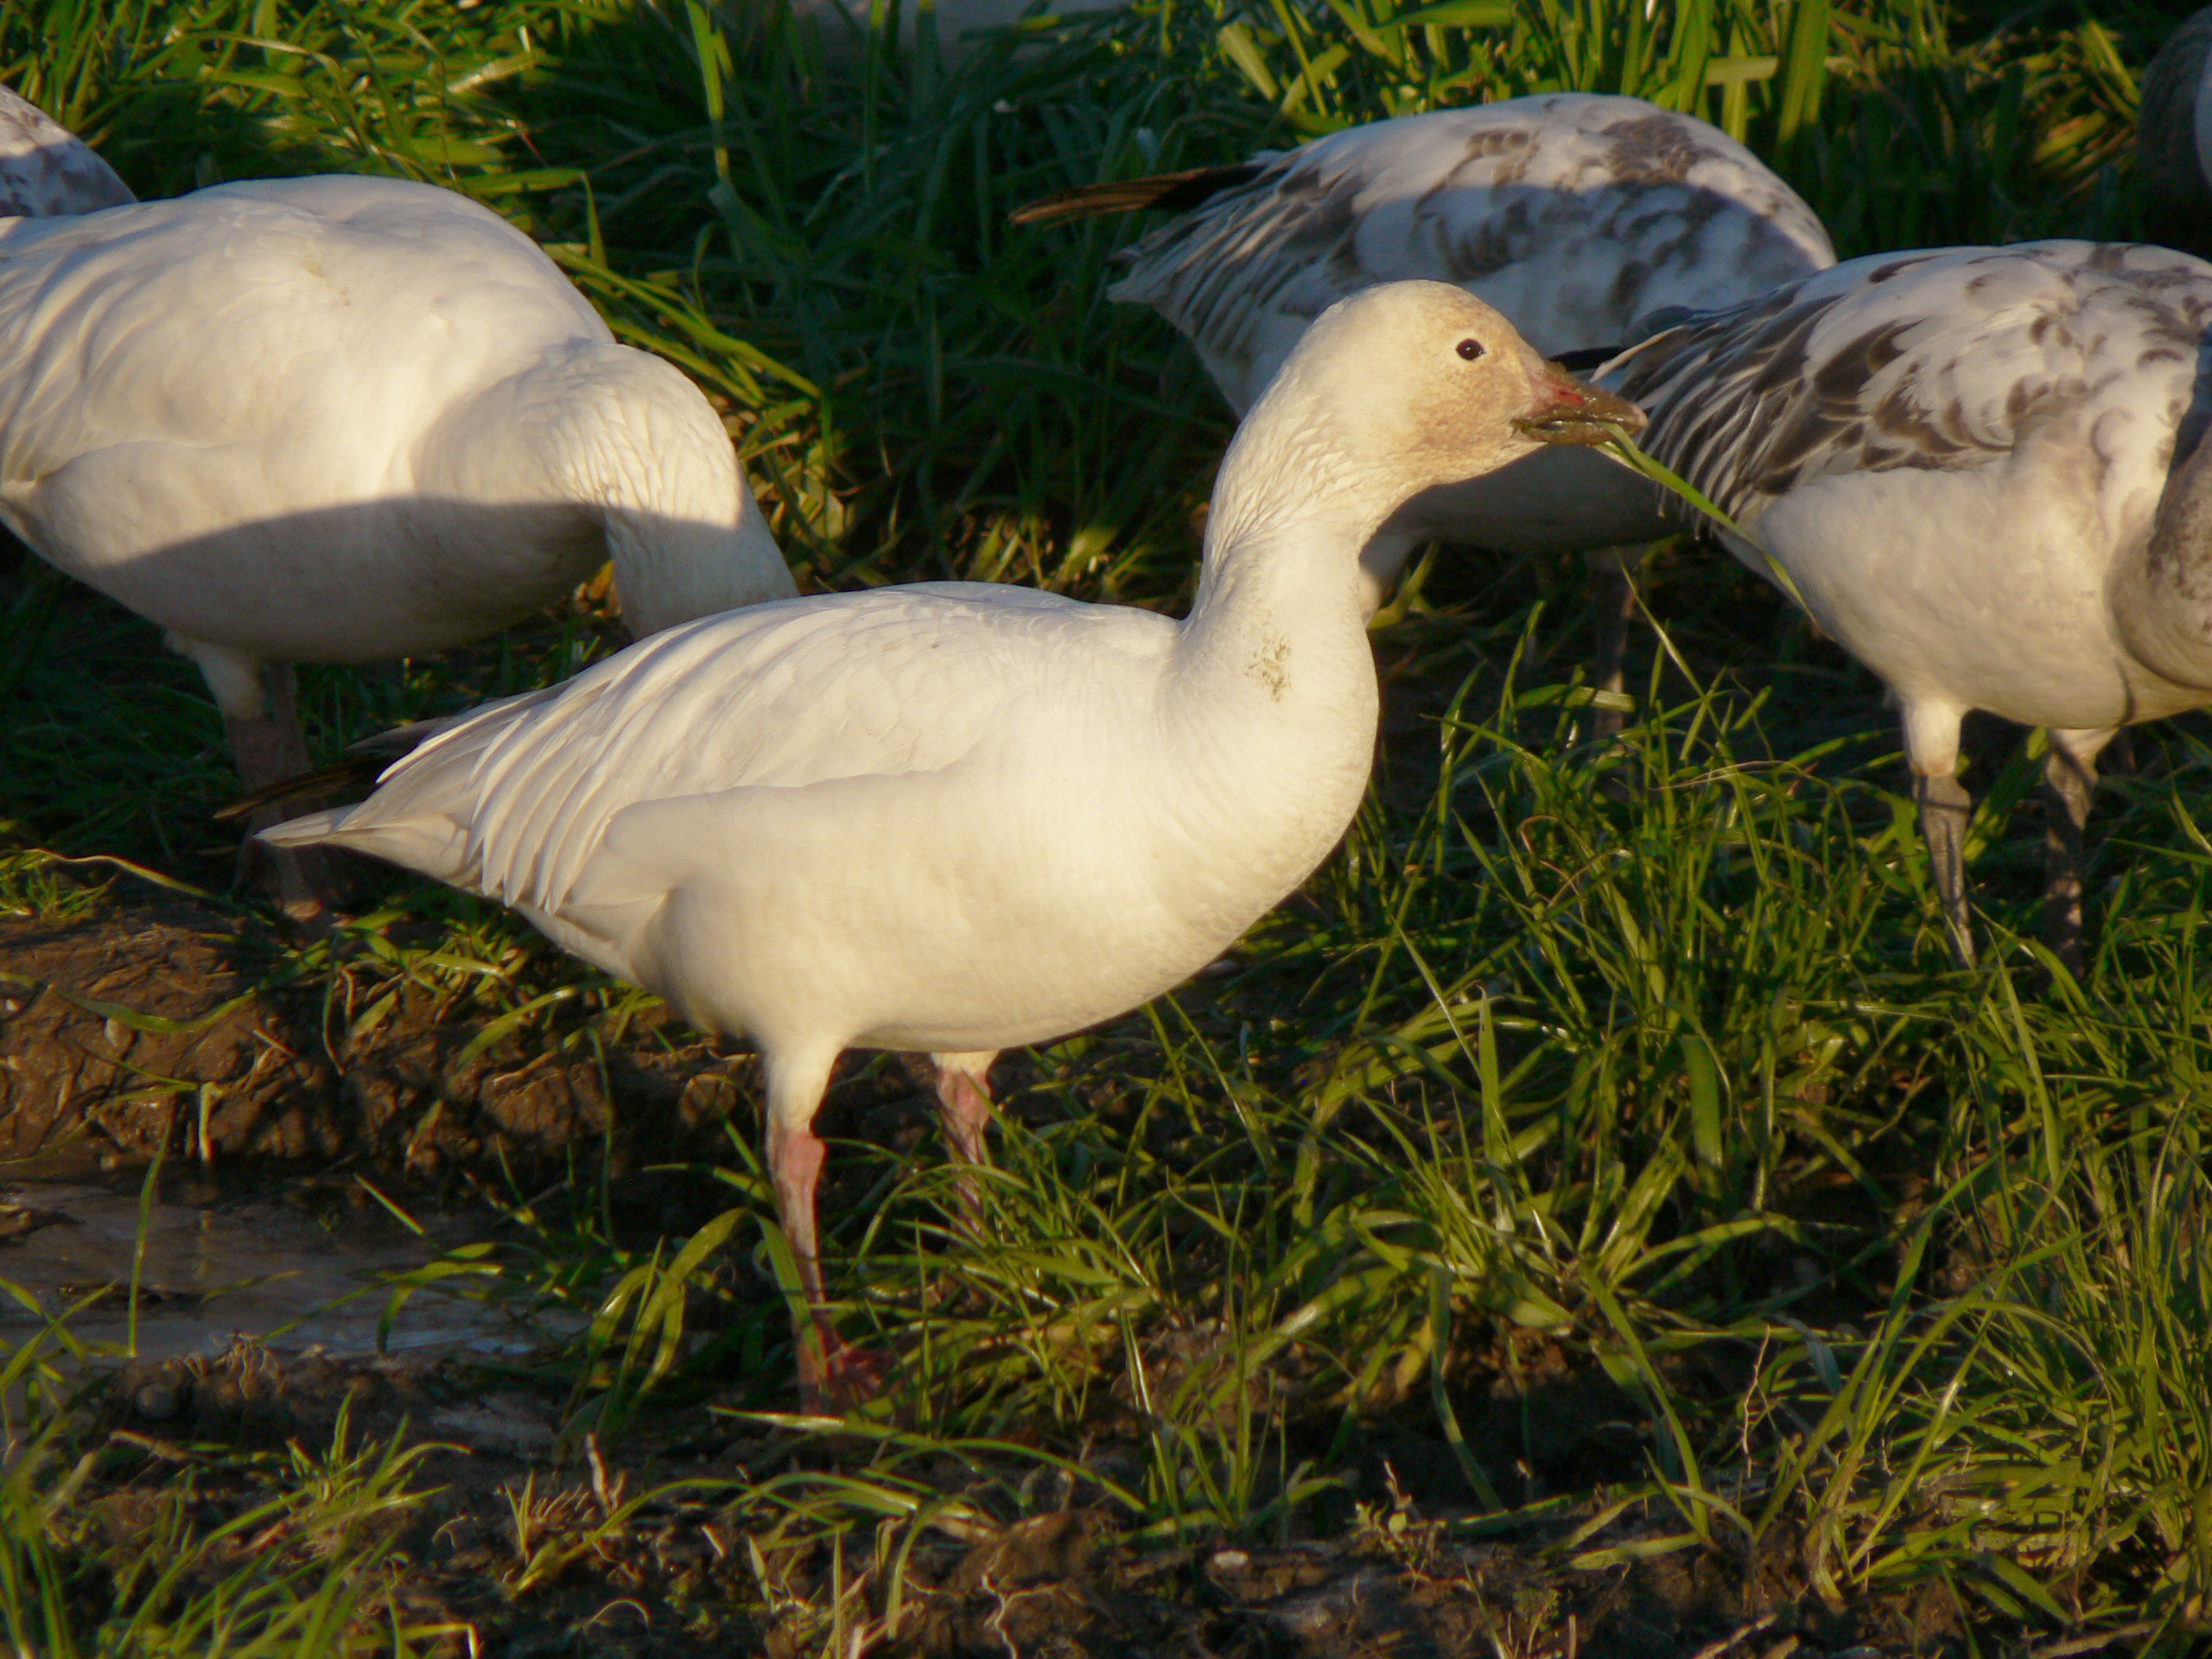 Snow geese, Wikipedia